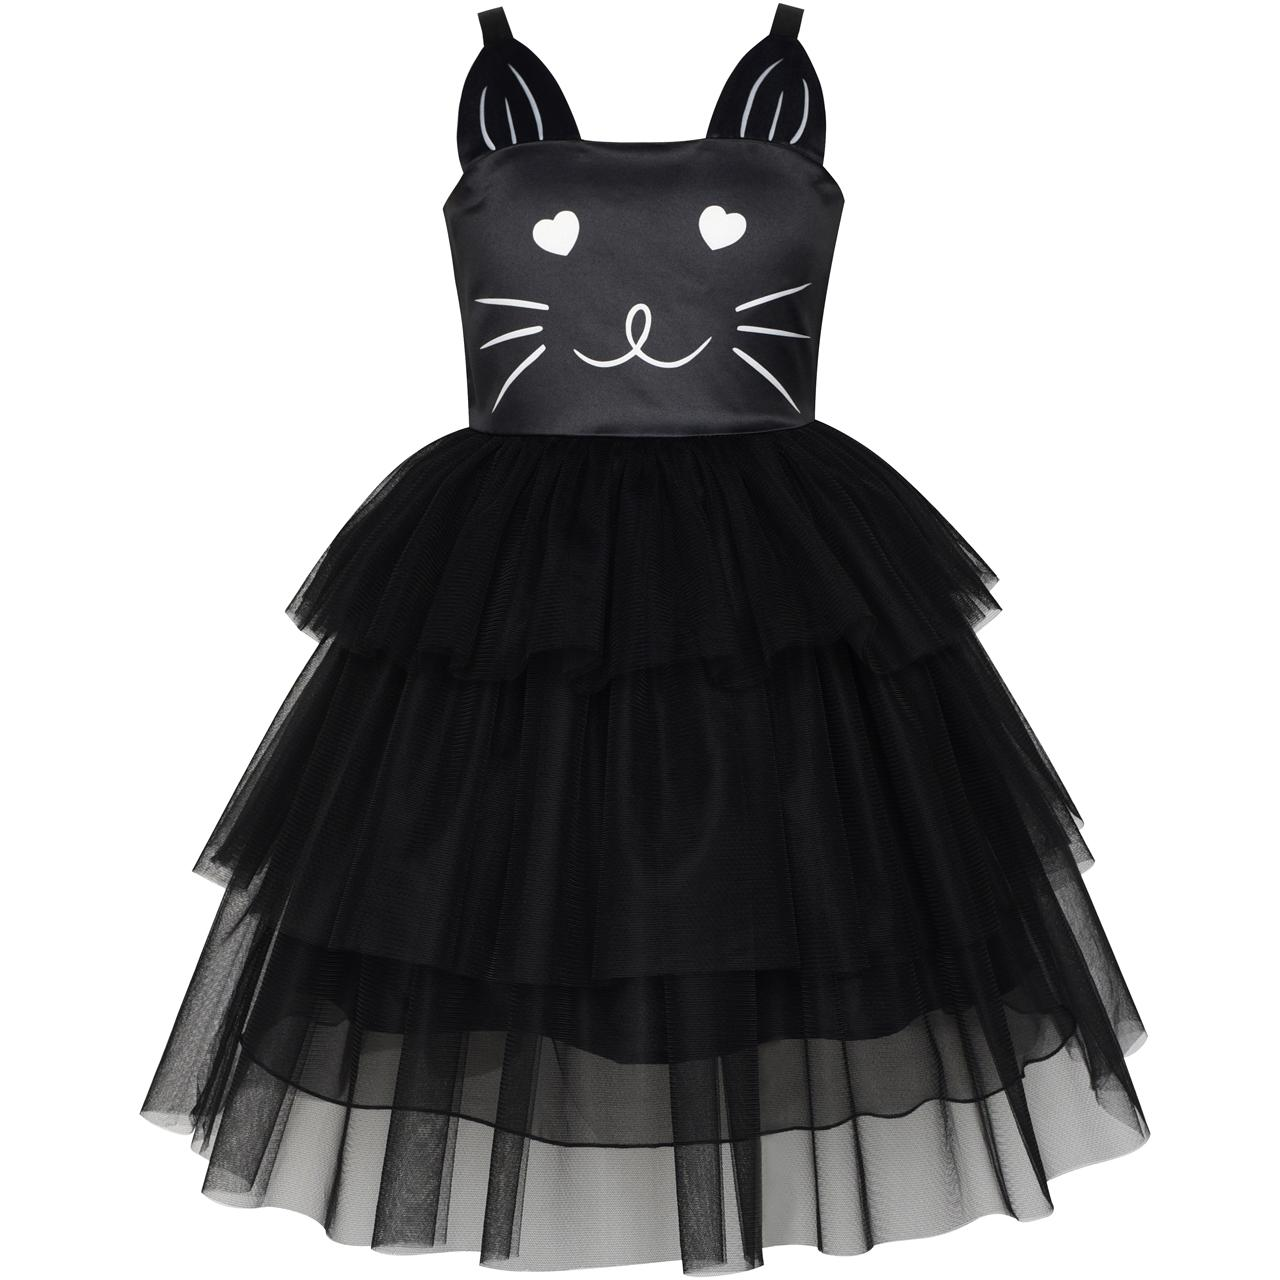 Girls Dress Cat Face Black Tower Ruffle Dancing Party 2018 Summer Princess Wedding Dresses Girl Clothes Size 4-10 Pageant цена 2017